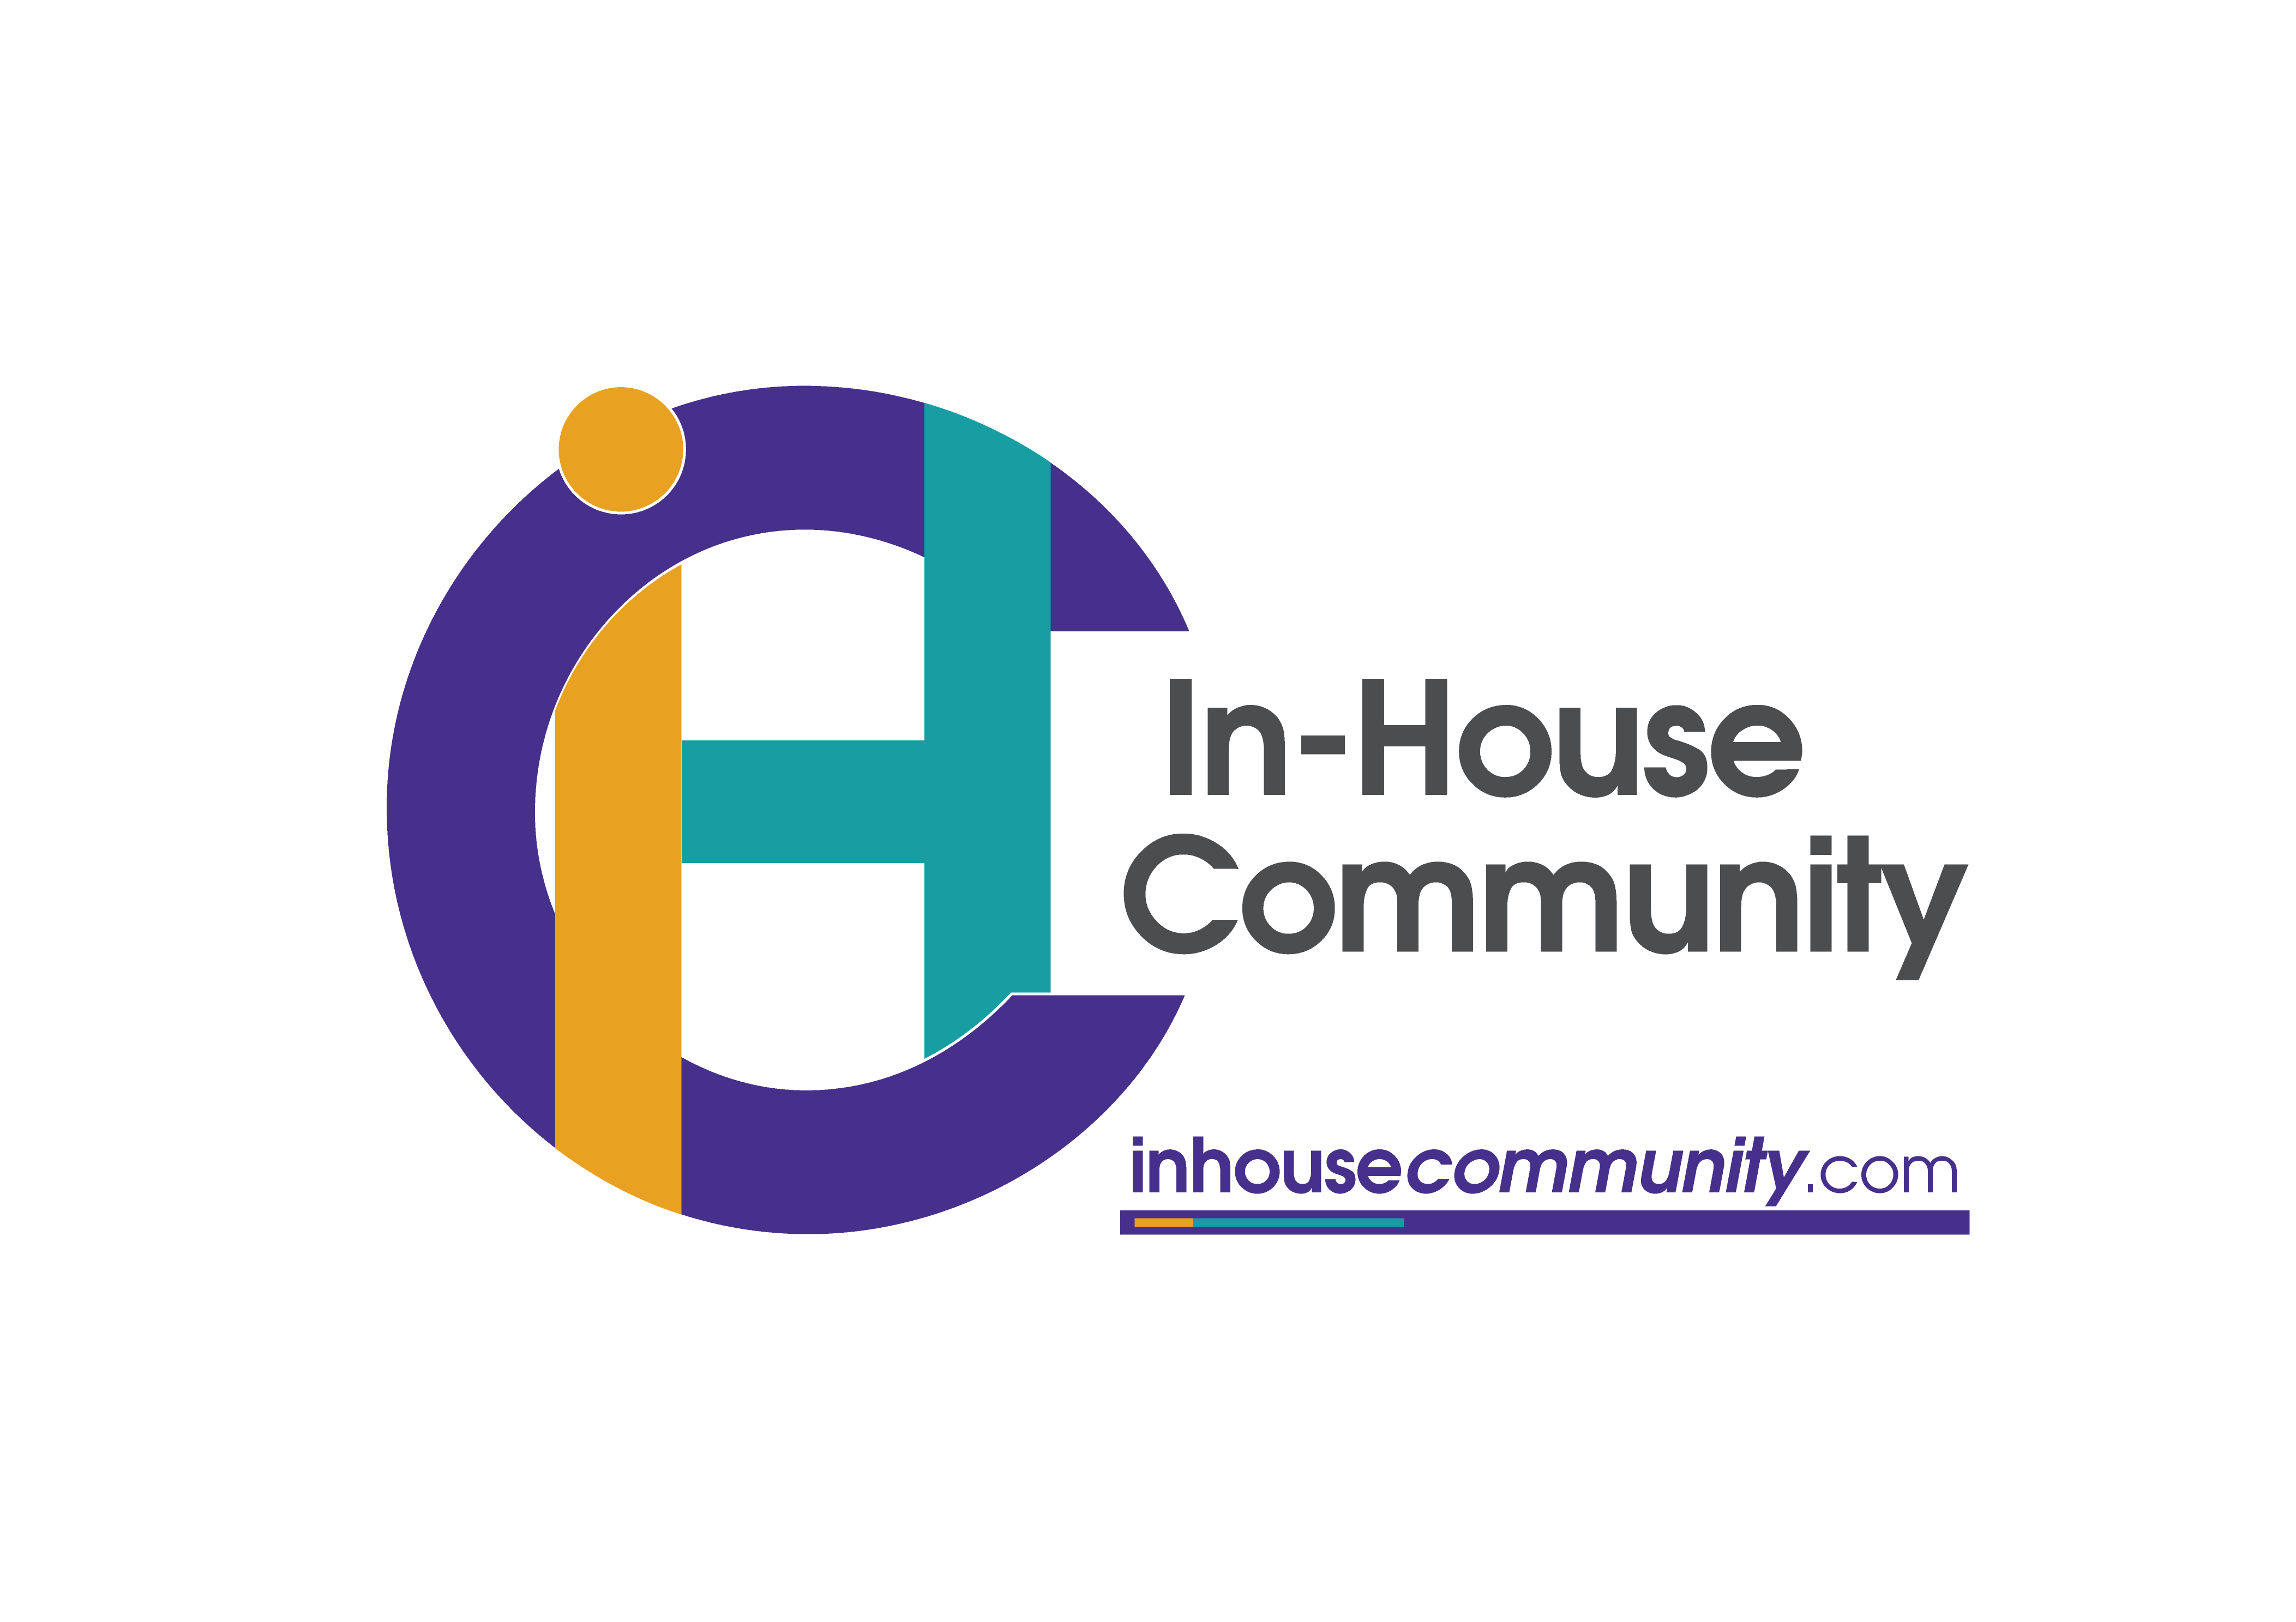 In-House Community